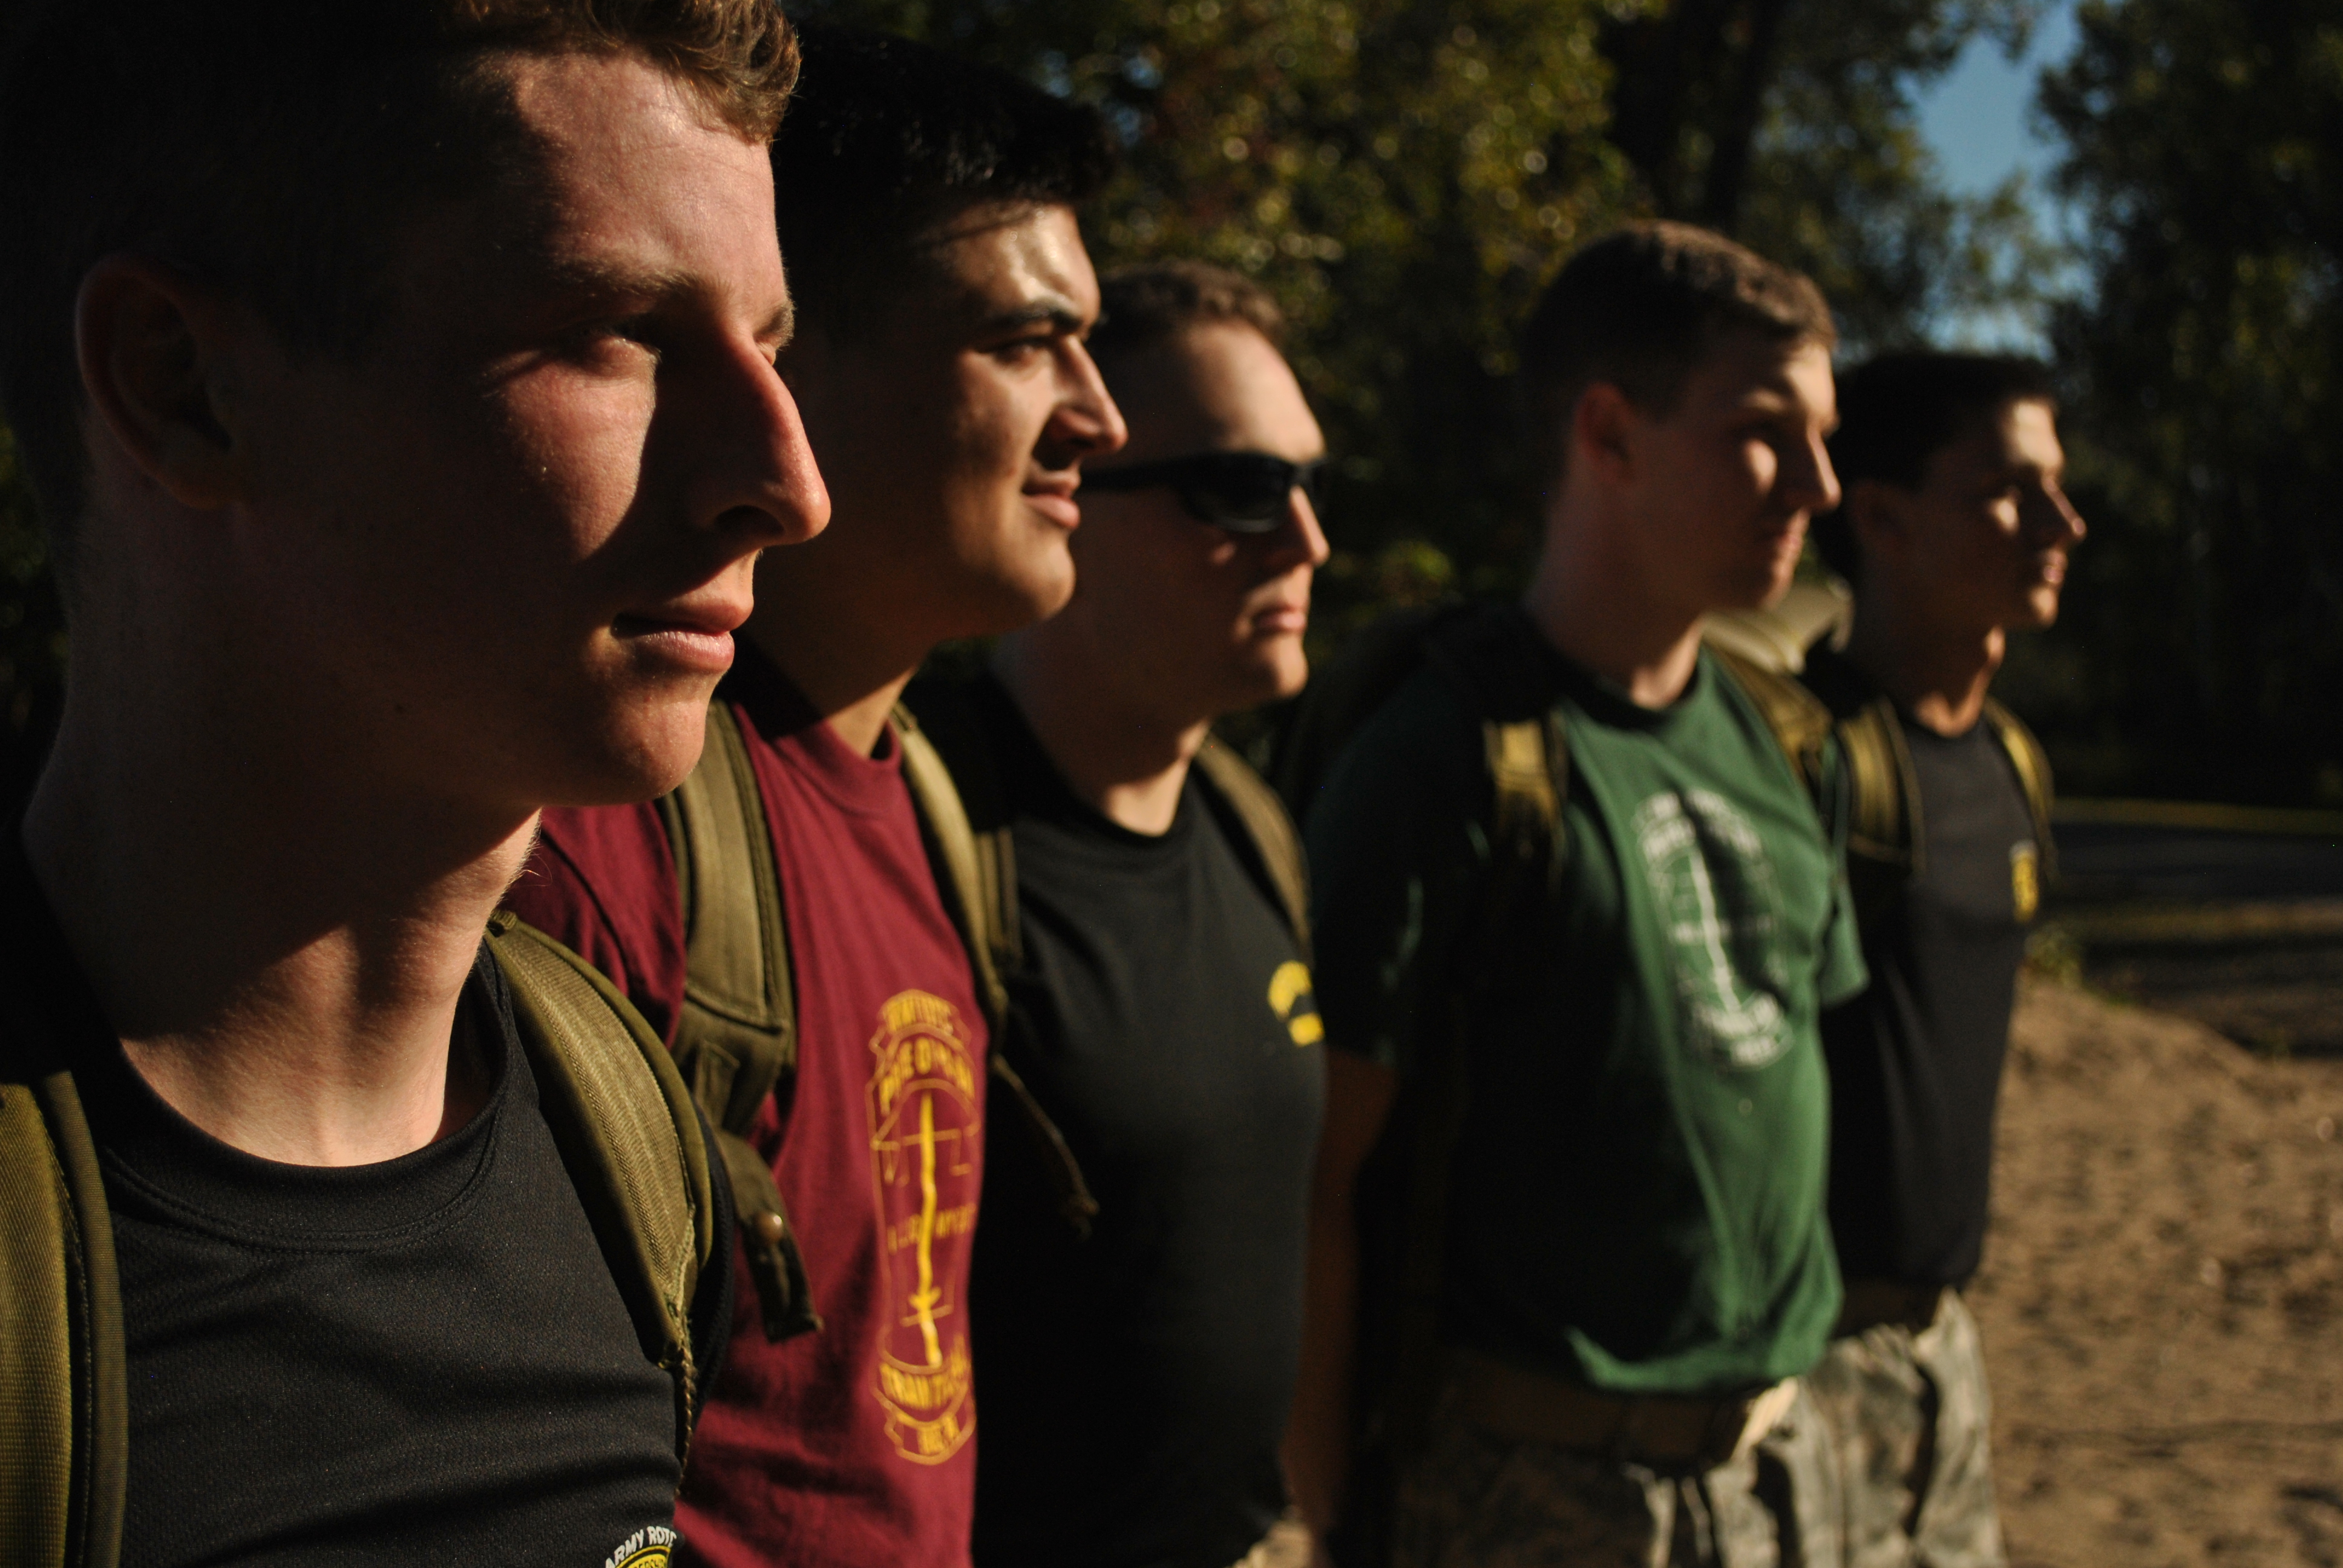 5th Annual Ruck The Bay